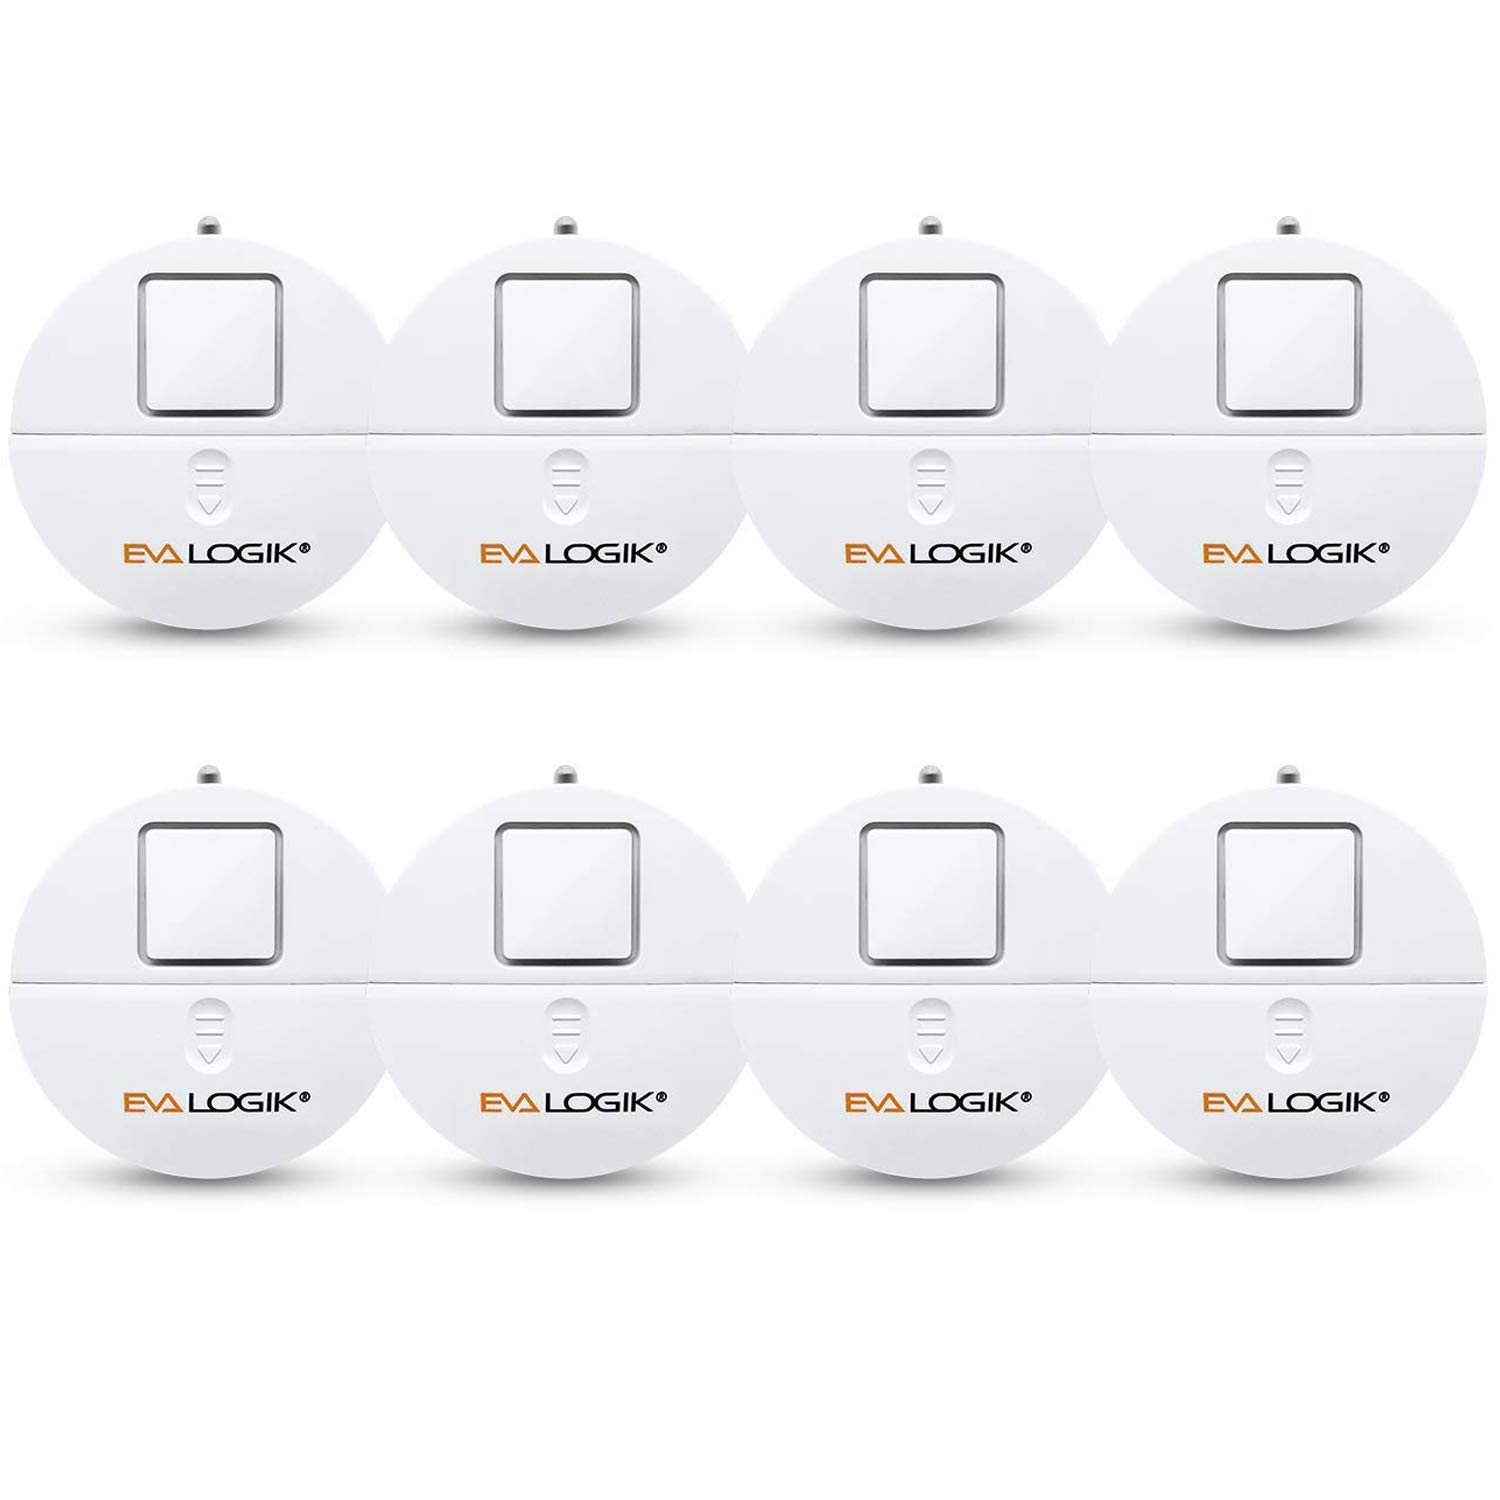 EVA LOGIK Modern Ultra-Thin Window Alarm with Loud 120dB Alarm and Vibration Sensors Compatible with Virtually Any Window, Glass Break Alarm Perfect for Home, Office, Dorm Room- 8 Pack by EVA LOGIK